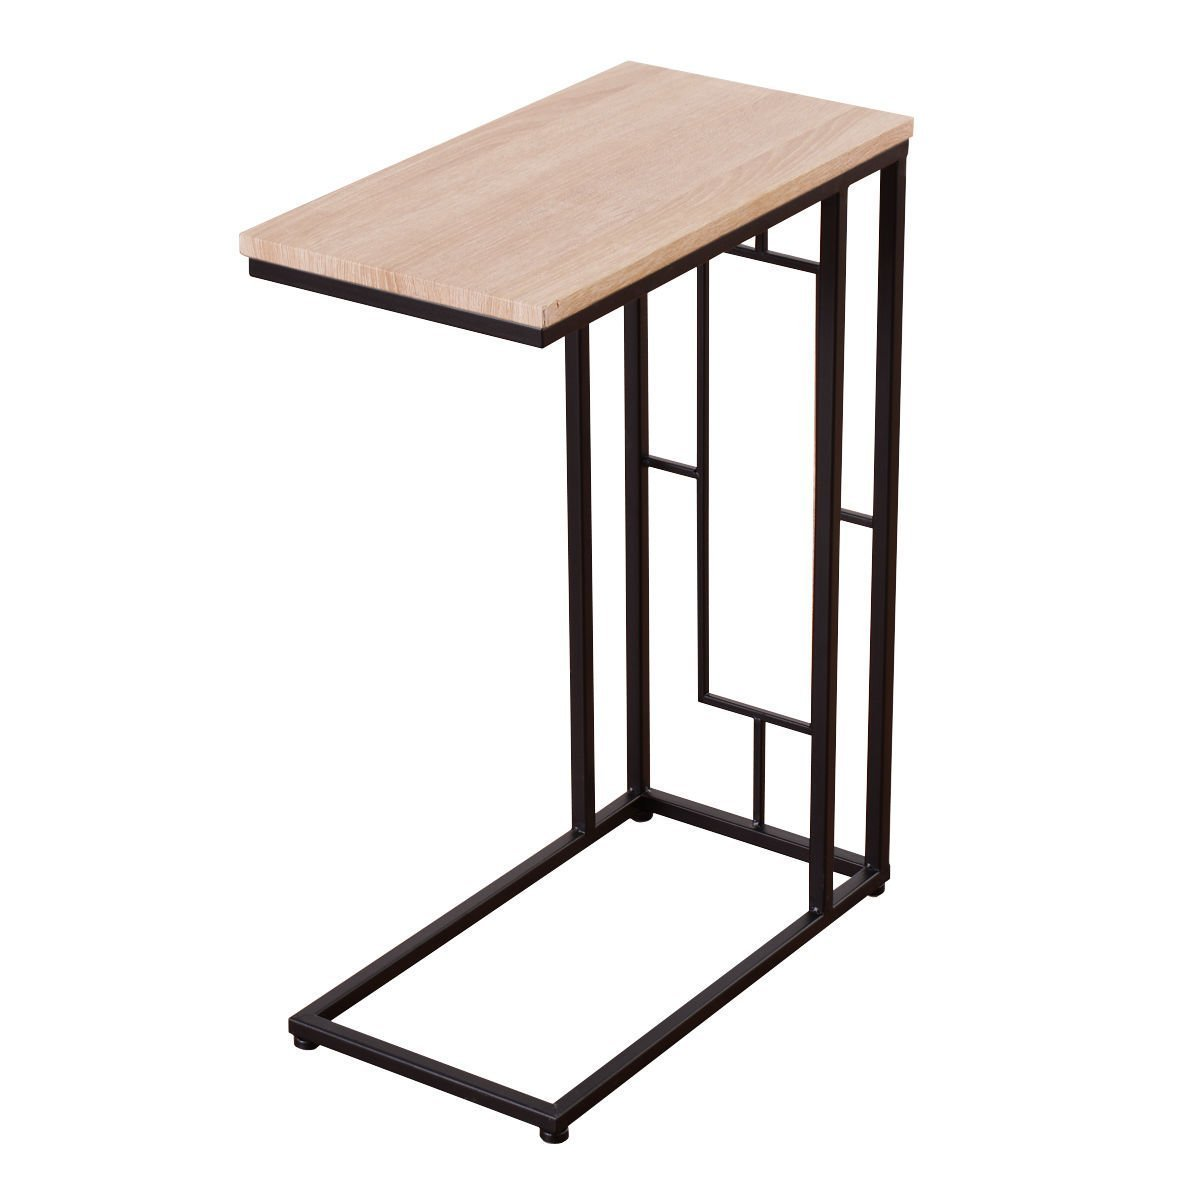 end sofa table small bedroom uk used tables home furniture design